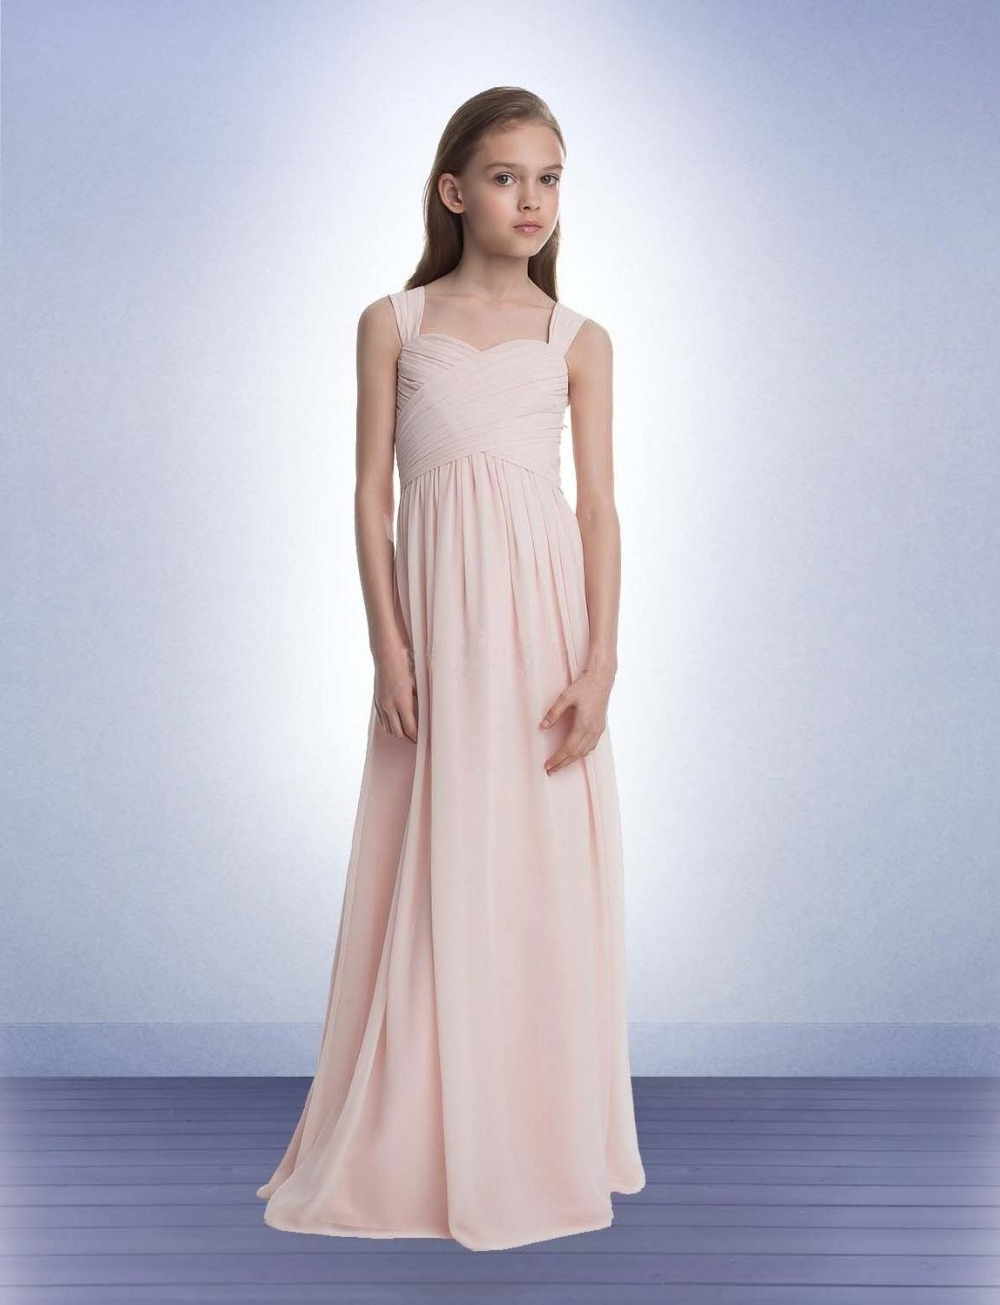 Wedding Junior Dress compare prices on junior dresses cheap online shoppingbuy low blush pink bridesmaid spaghetti straps pleats draped floor long chiffon peach wedding guest